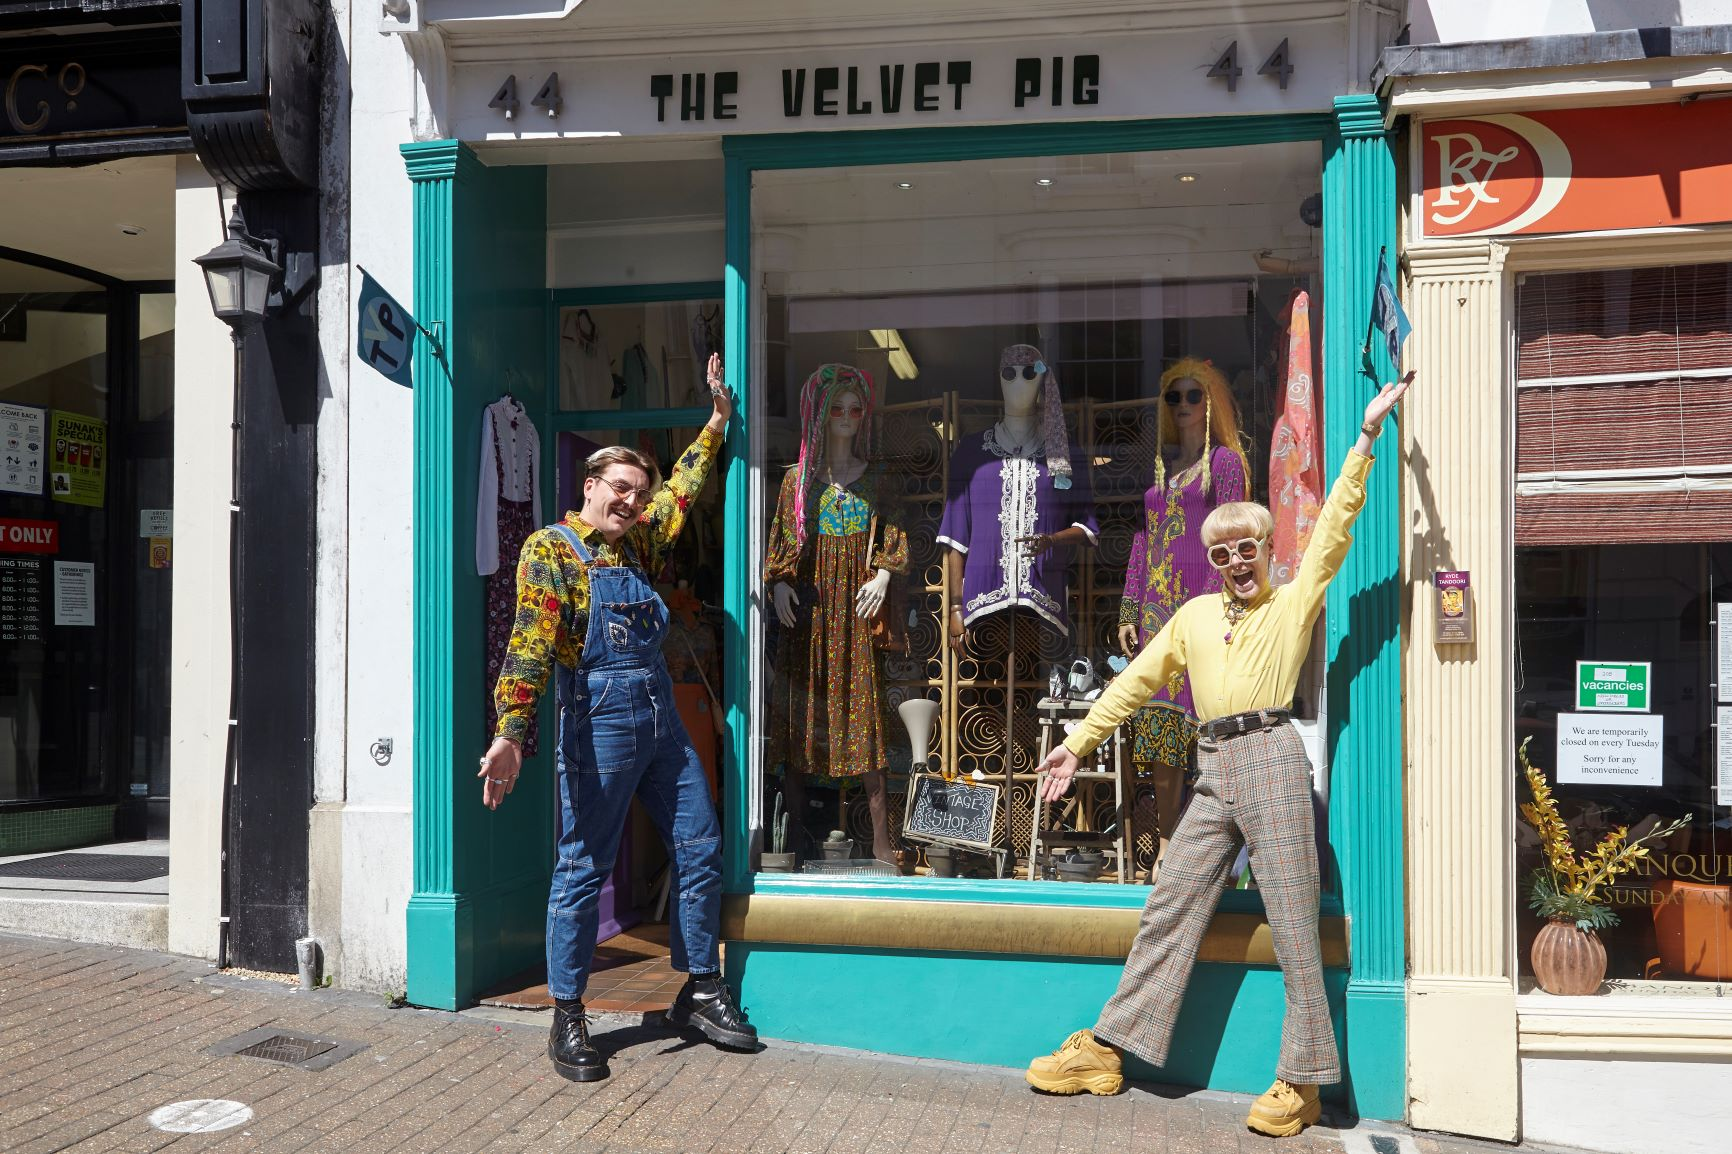 Shopkeepers standing outside The Velvet Pig shop in Ryde, Isle of Wight